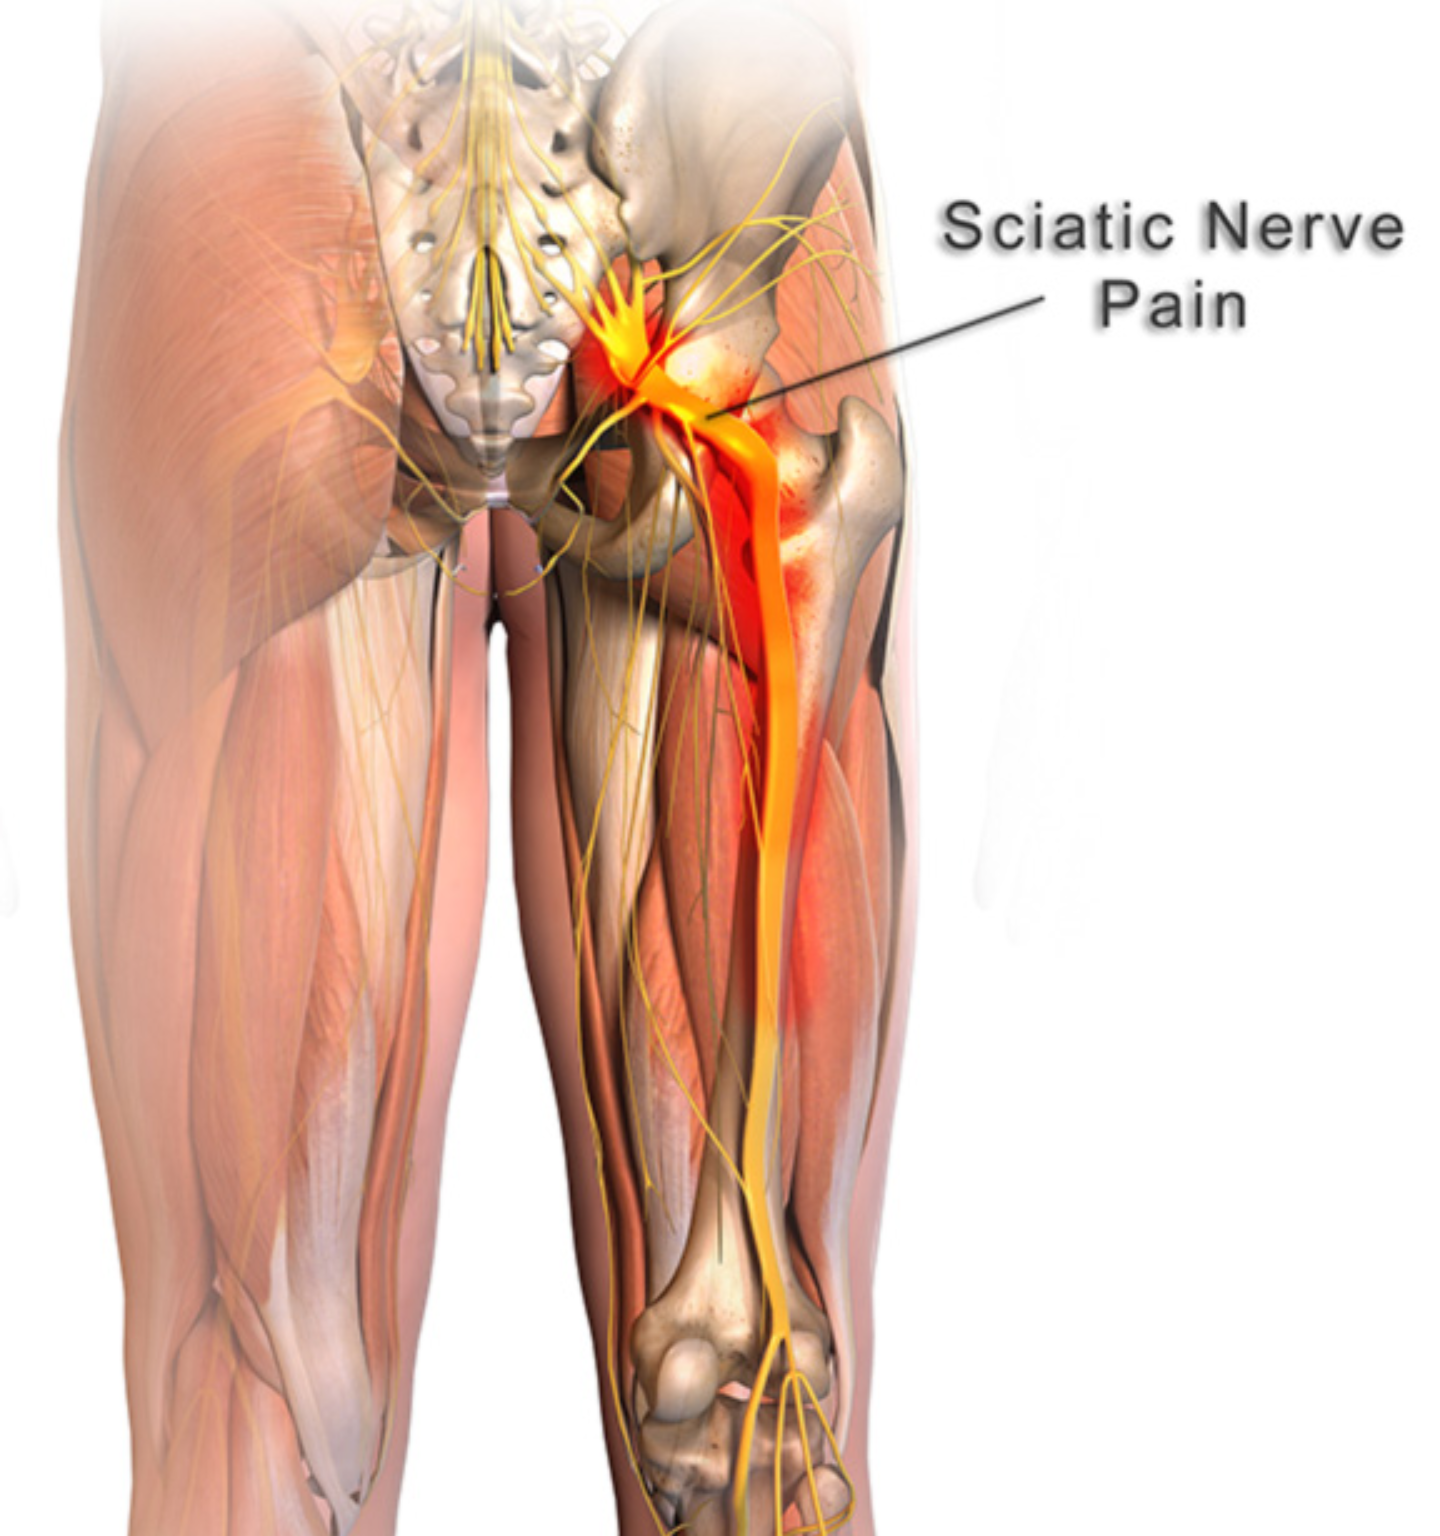 Diagram Of Sciatic Nerve In Body Trusted Wiring Diagram